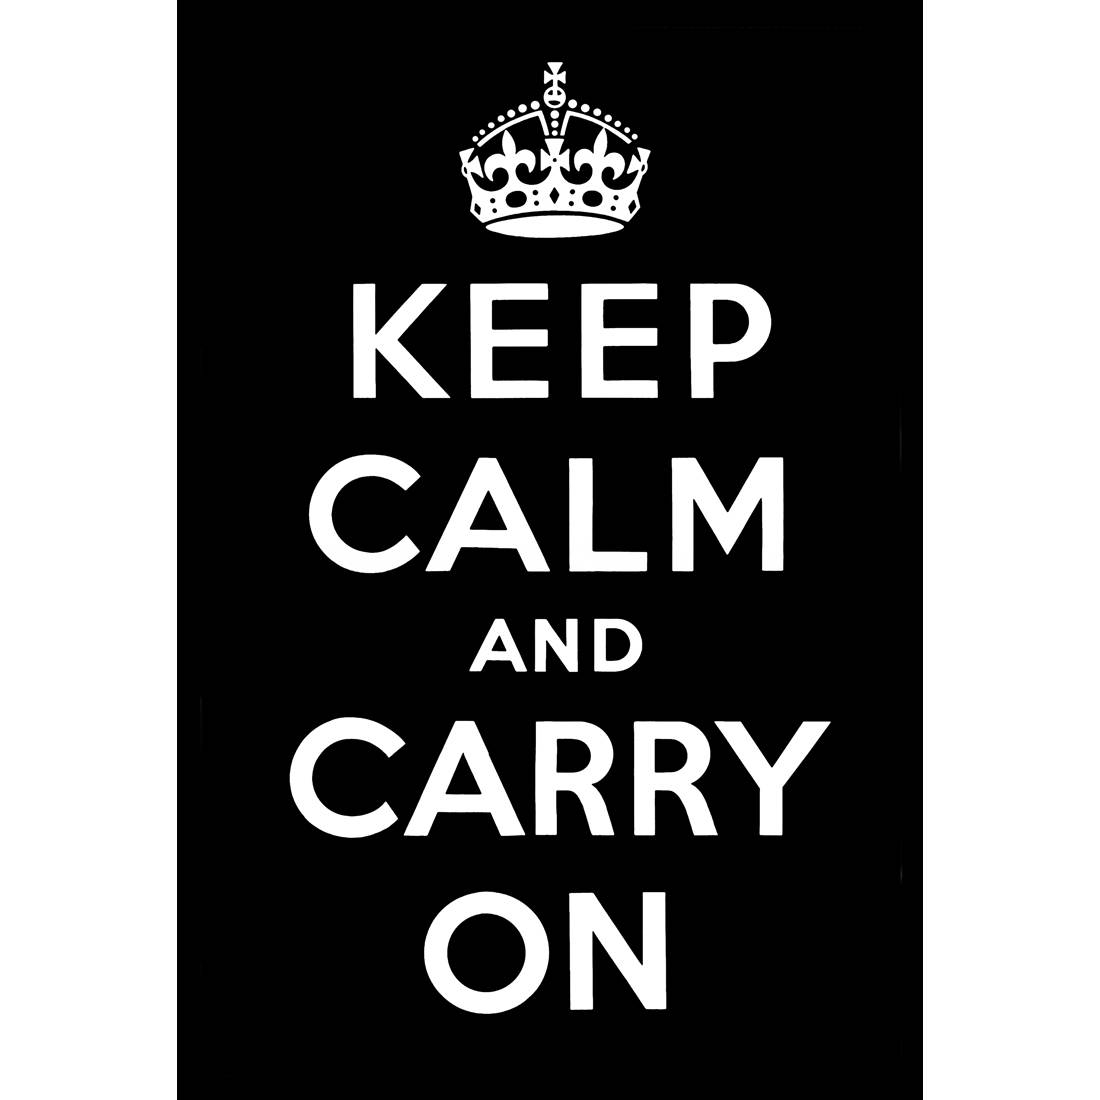 Keep Calm And Carry On, Black – Canvas Print – Wall Art – Australia Intended For Most Up To Date Keep Calm And Carry On Wall Art (View 16 of 25)